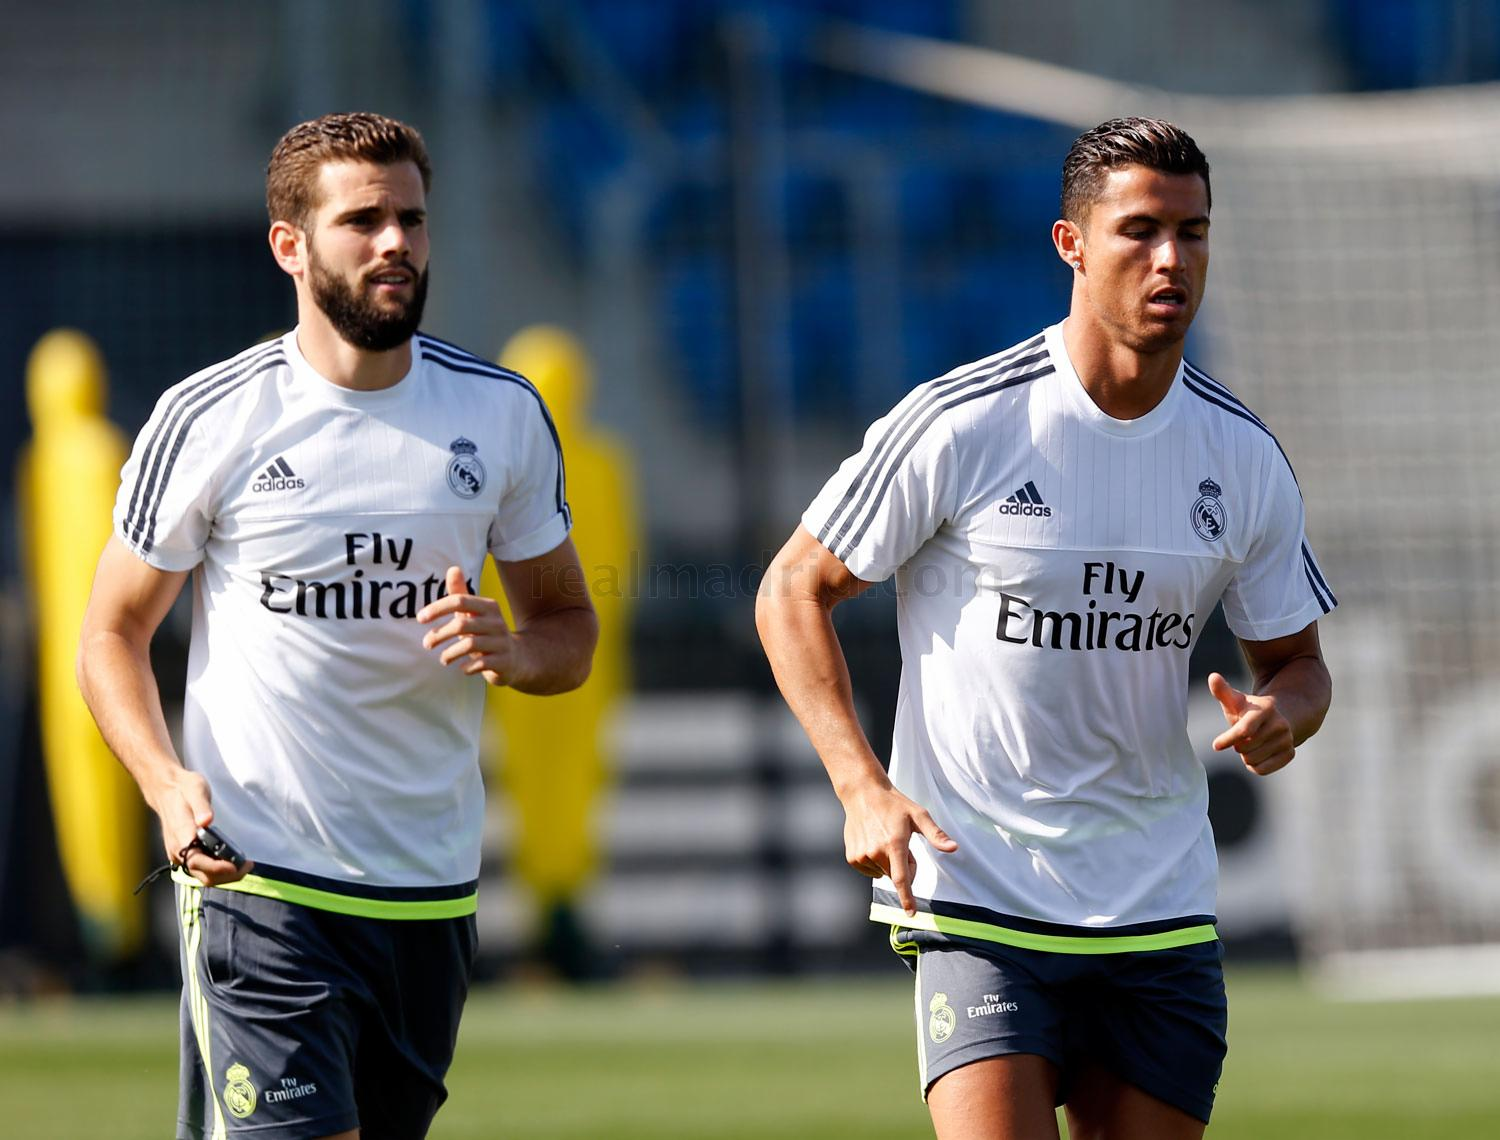 Real Madrid - Entrenamiento del Real Madrid - 19-08-2015